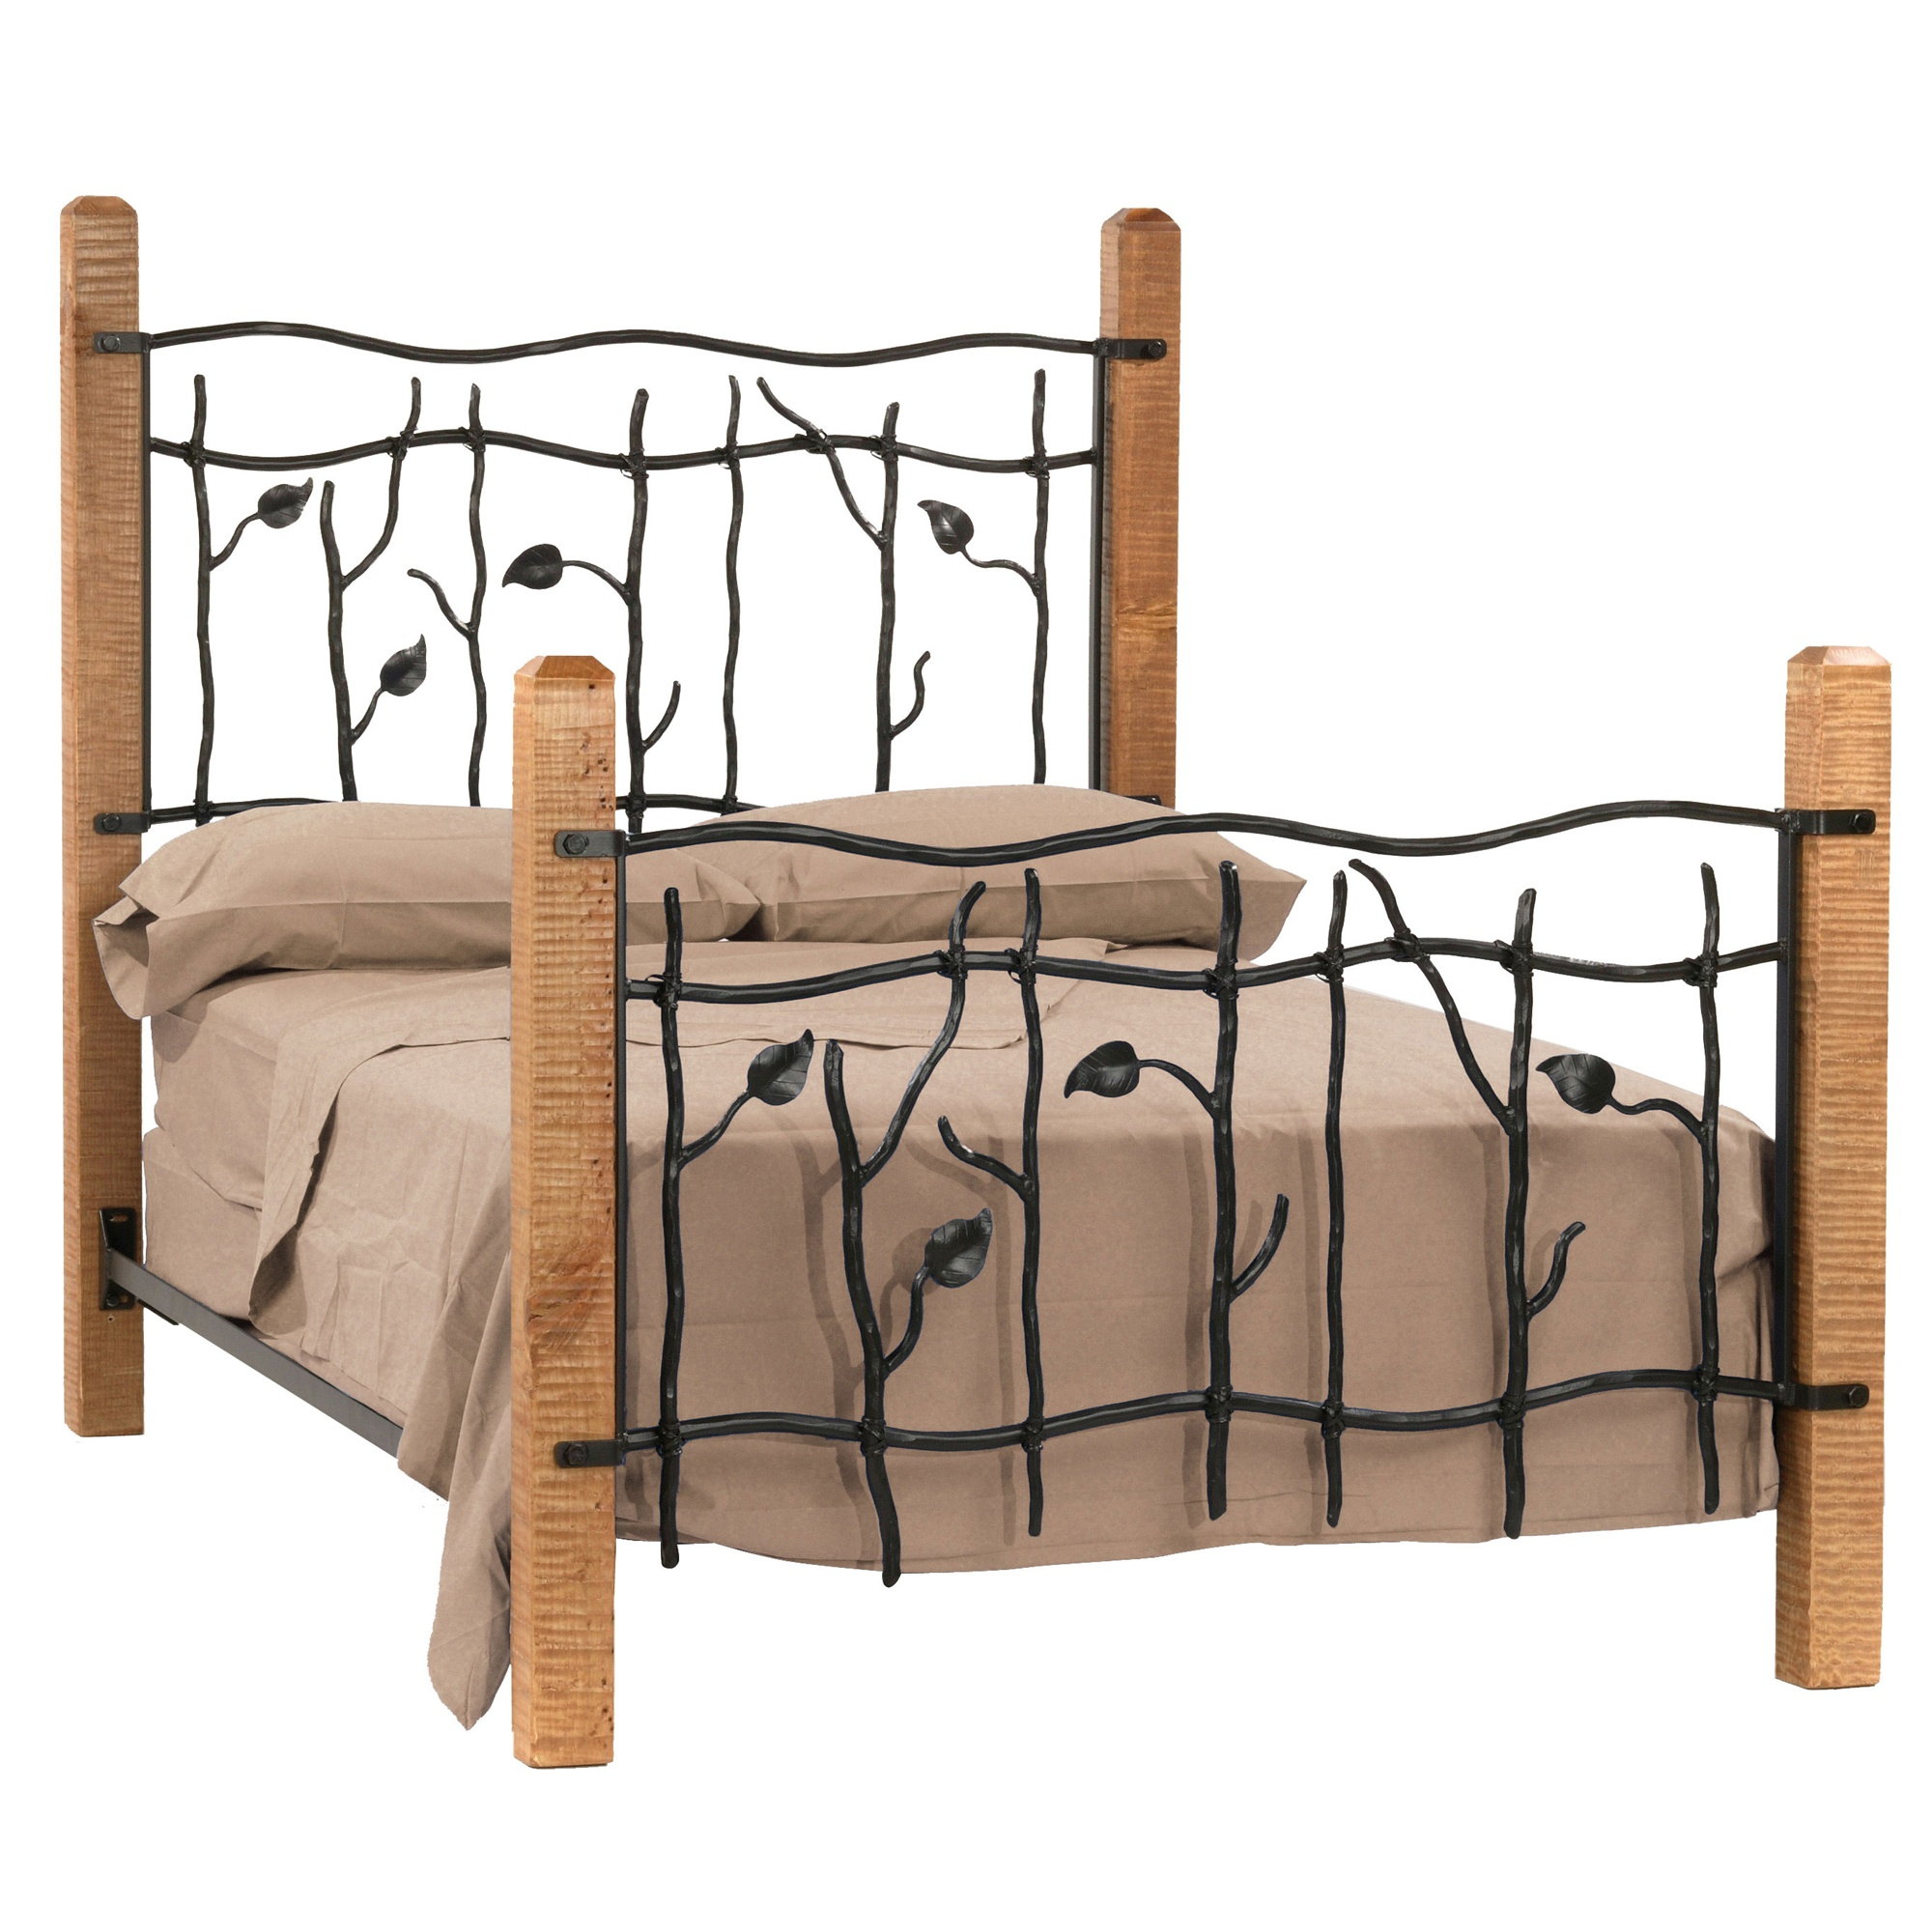 Wrought Iron Sassafras Beds By Stone County Ironworks